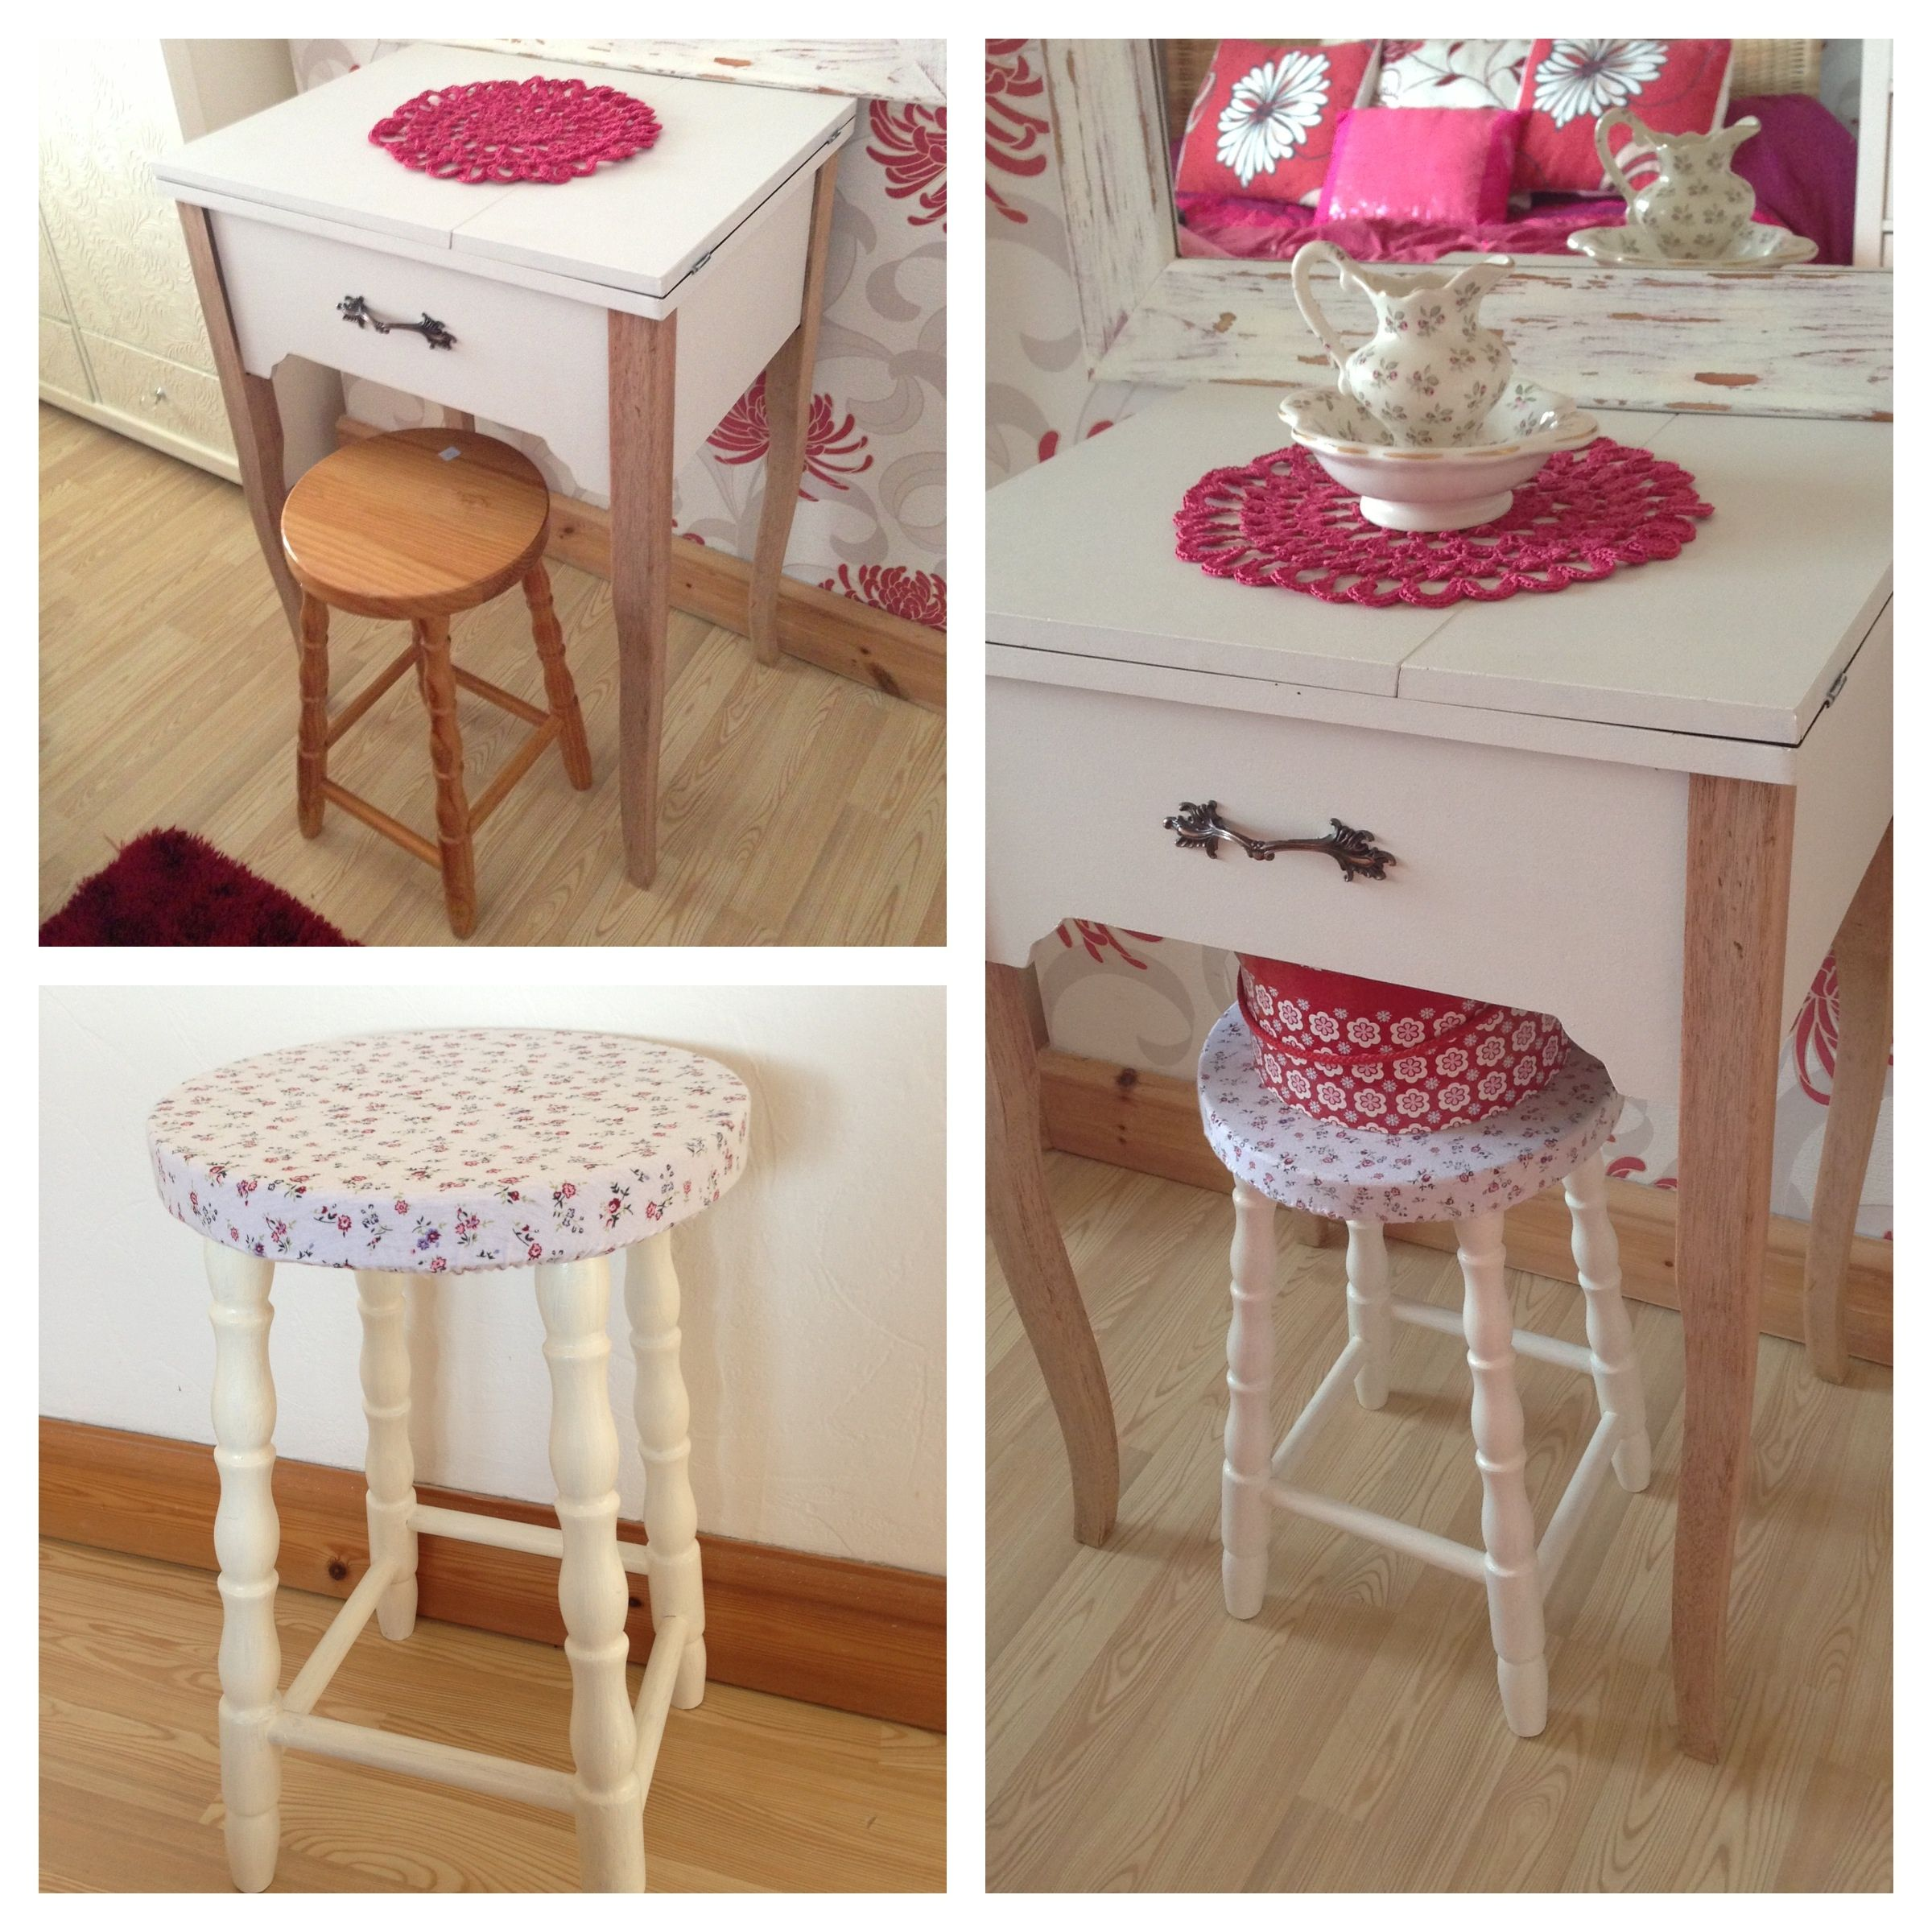 I Needed A Little Stool To Match My Bedroom Furniture